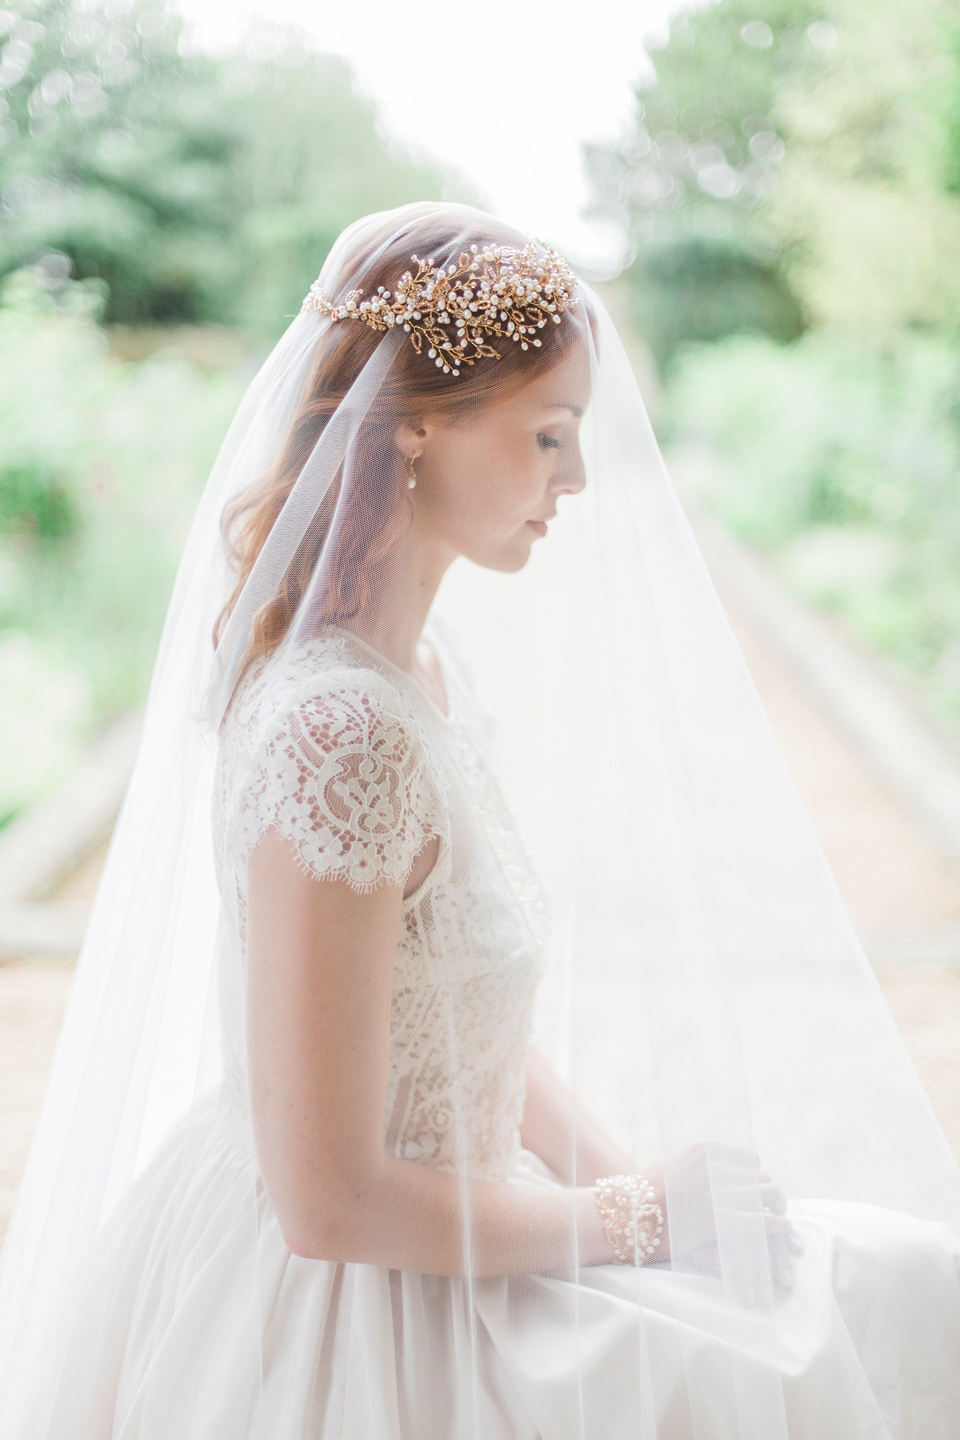 Hermione Harbutt: Nature Inspired Hair Vines and Headpieces for the Fine Art Inspired Bride